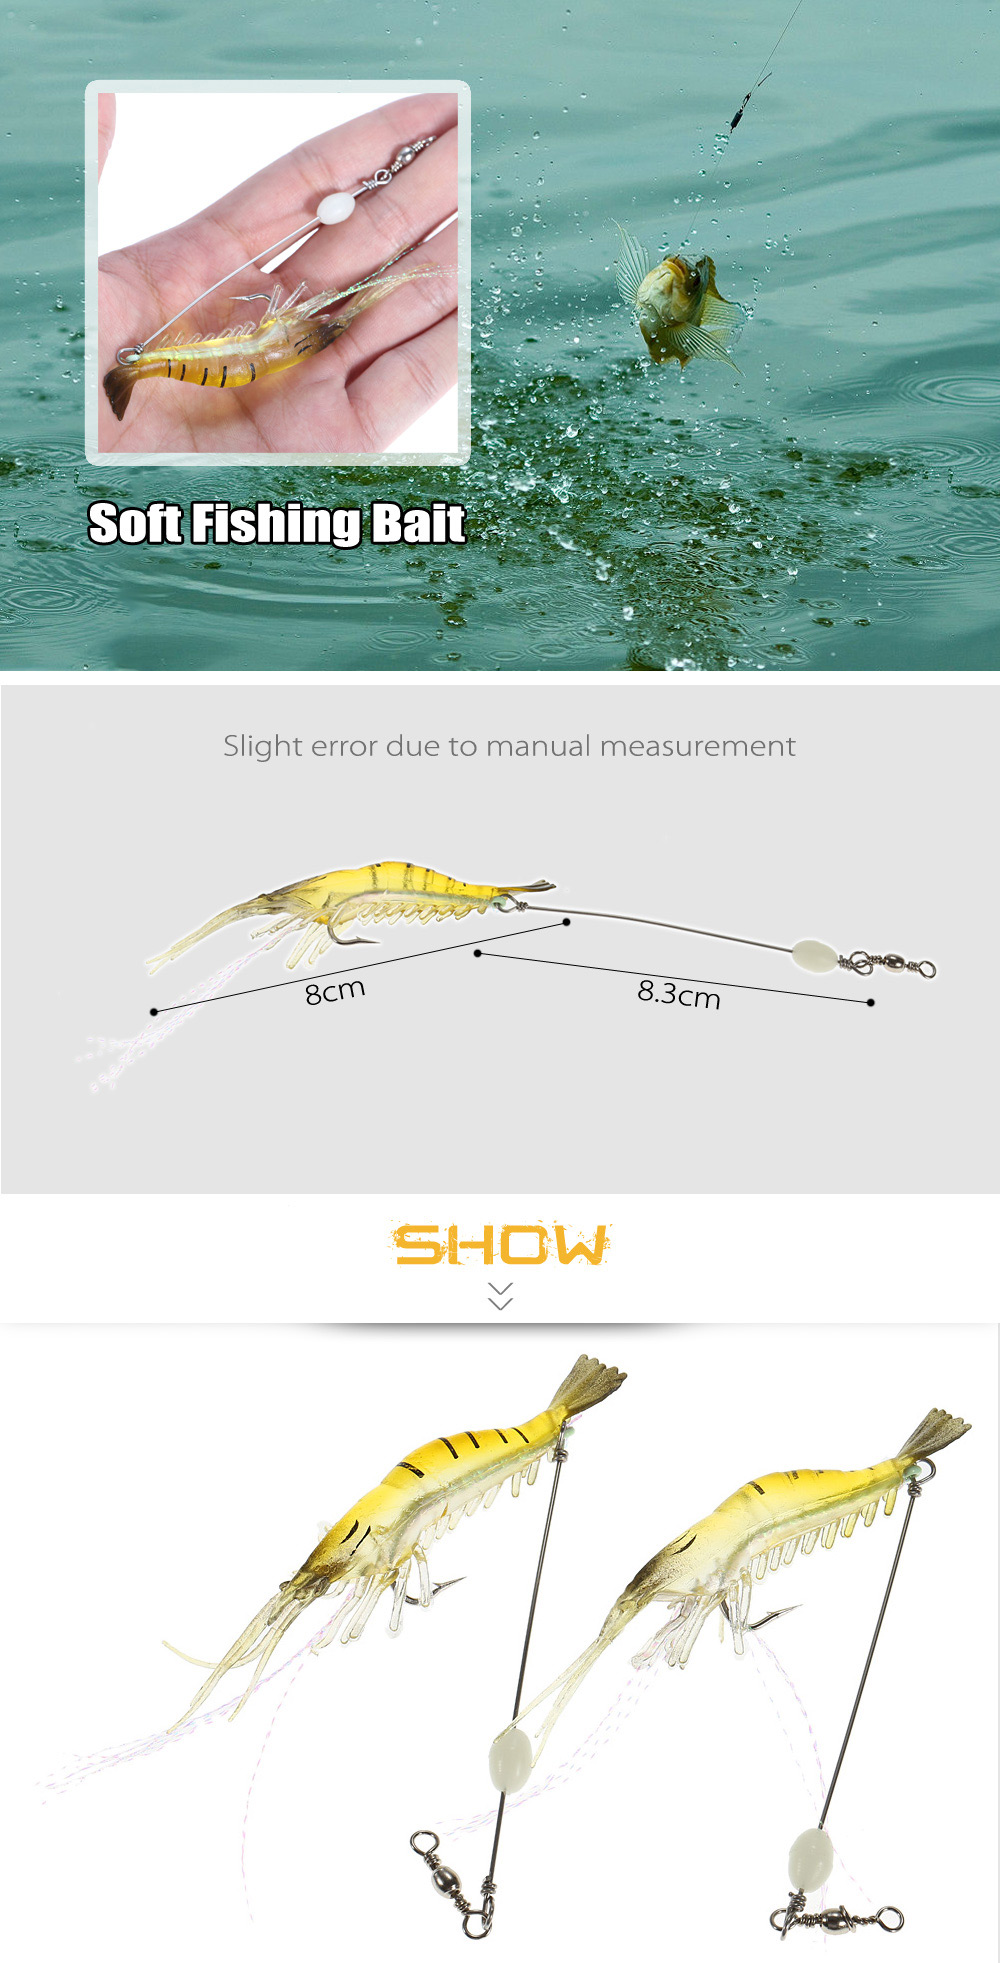 2pcs Artificial Shrimp-shaped Soft Fishing Bait Lure with Hook